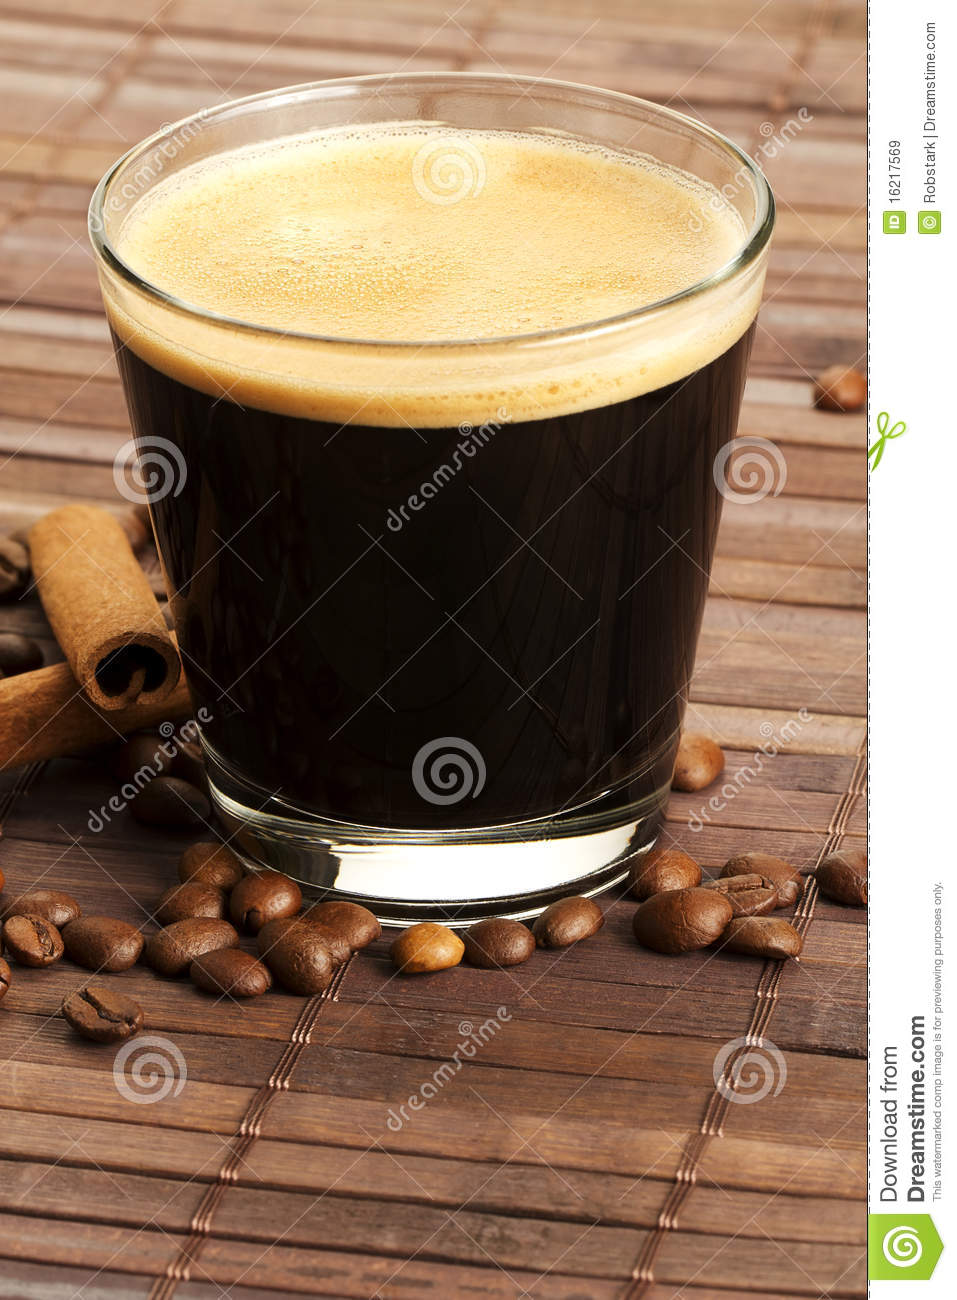 how to start drinking coffee reddit